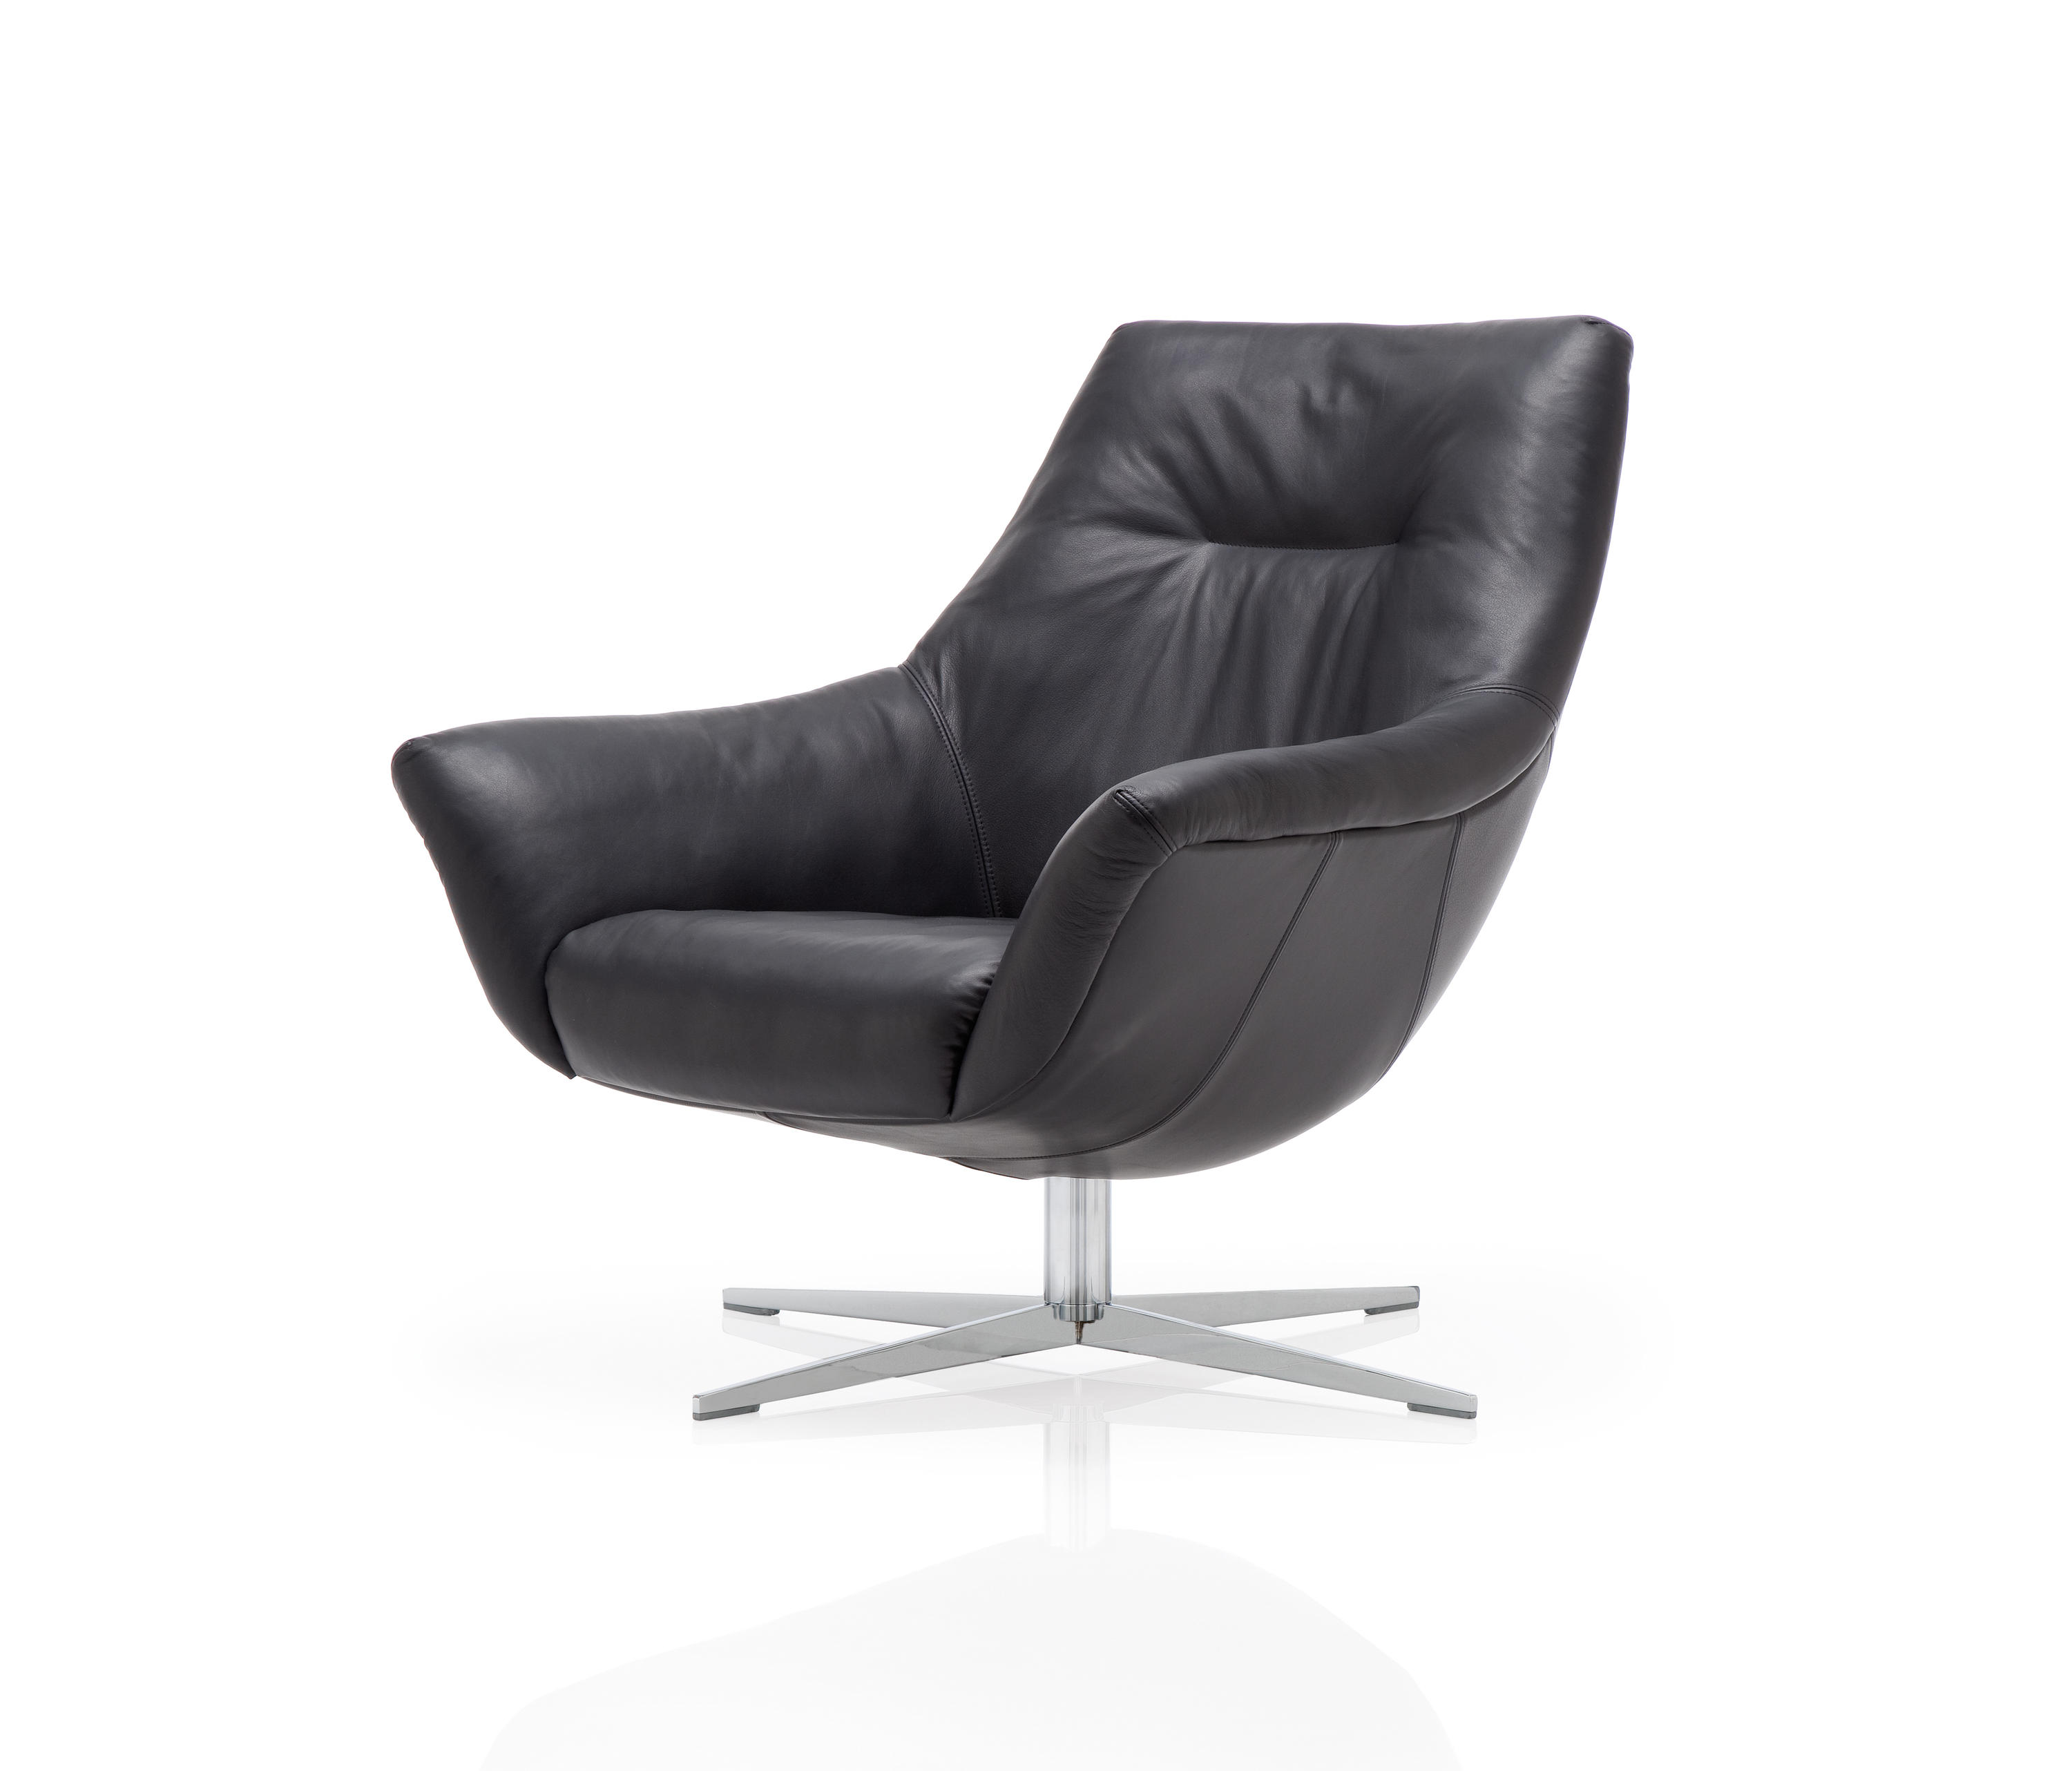 rolf benz 566 lounge chairs from rolf benz architonic